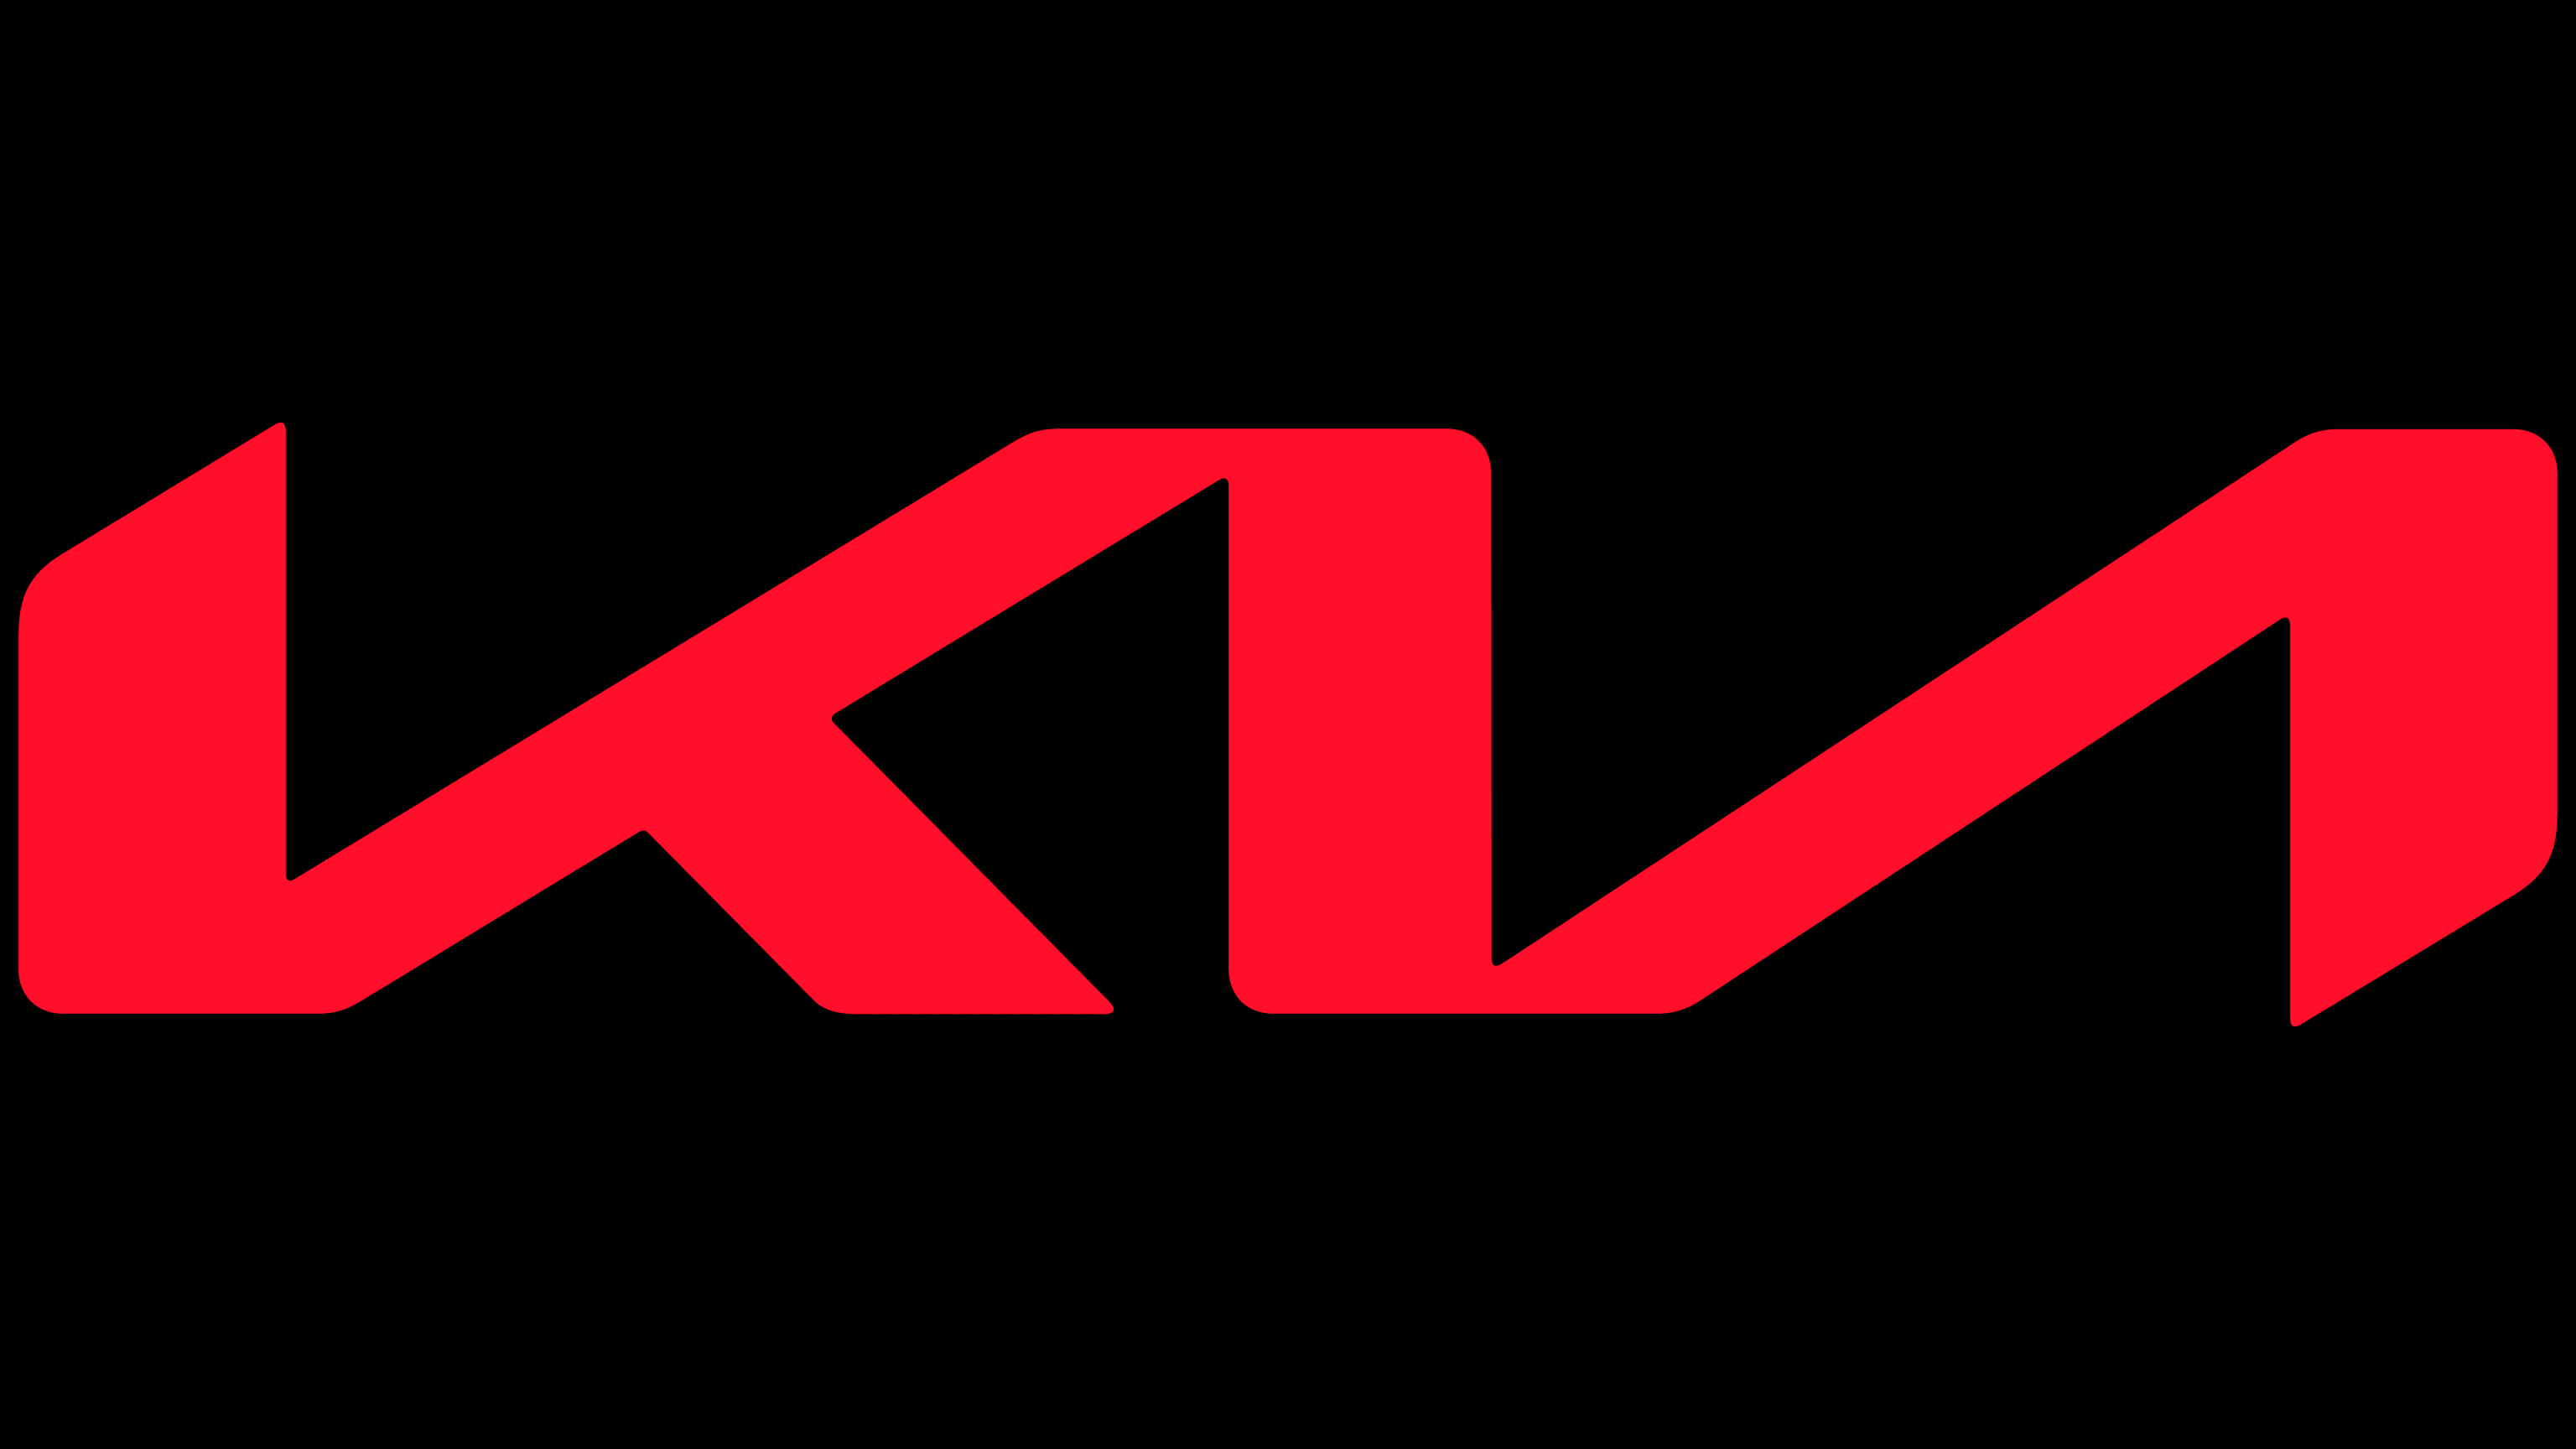 2021 kia logo Redesign and Review